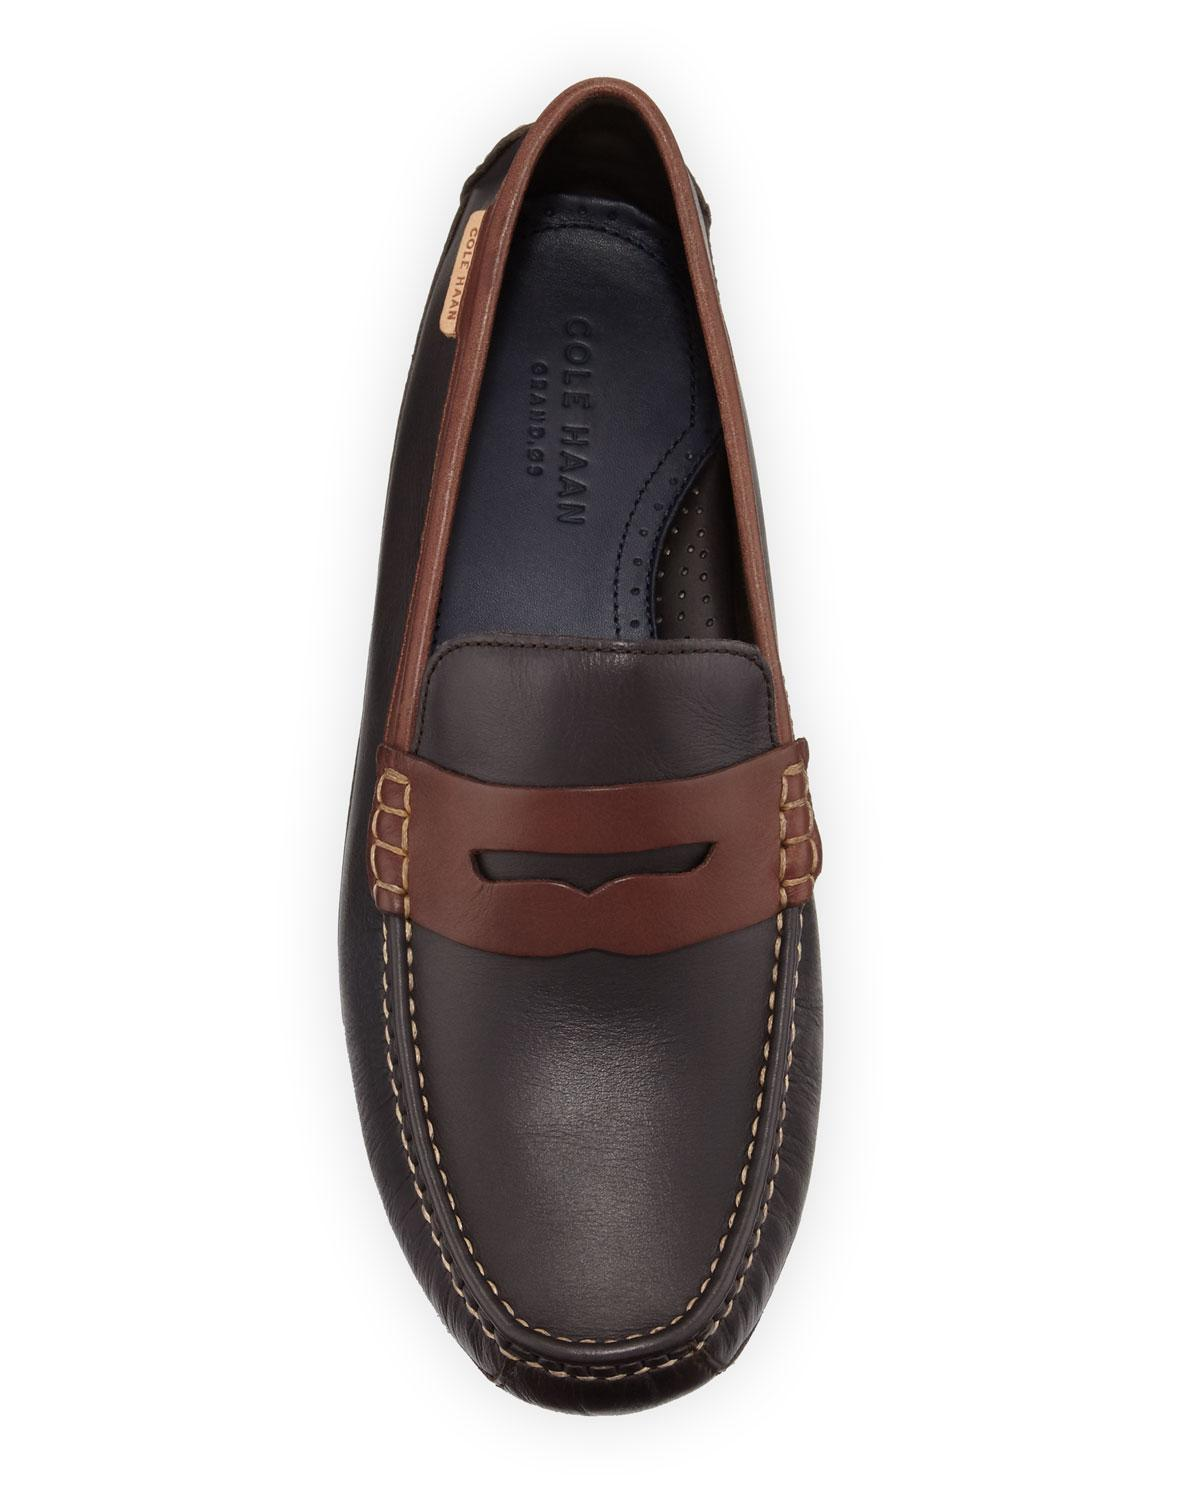 2f3a1cf43e5 Lyst - Cole Haan Men s Coburn Leather Penny Drivers in Brown for Men